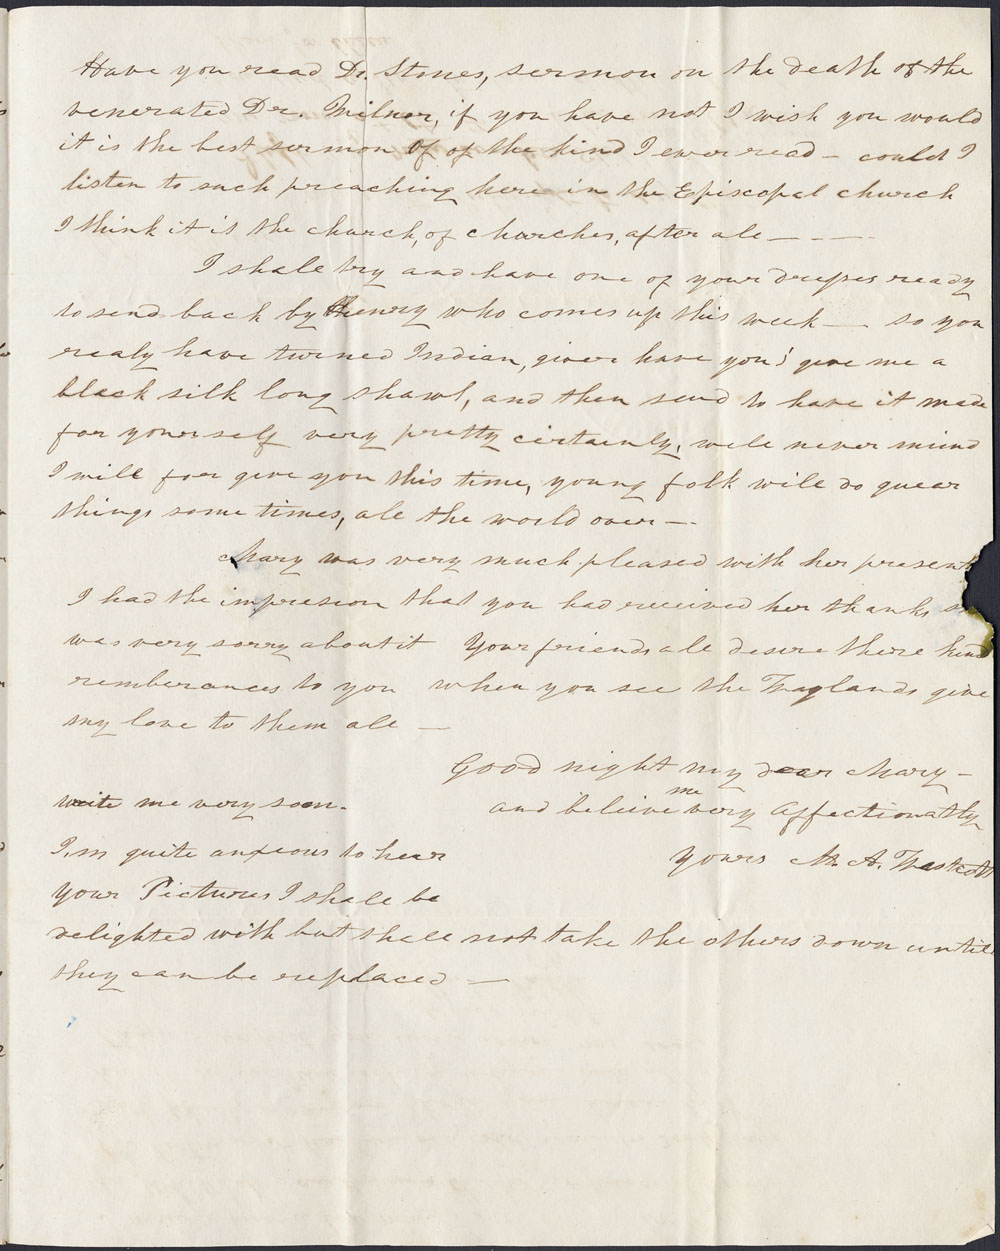 [Correspondance de Mary Westcott] 1845 . (item 7)